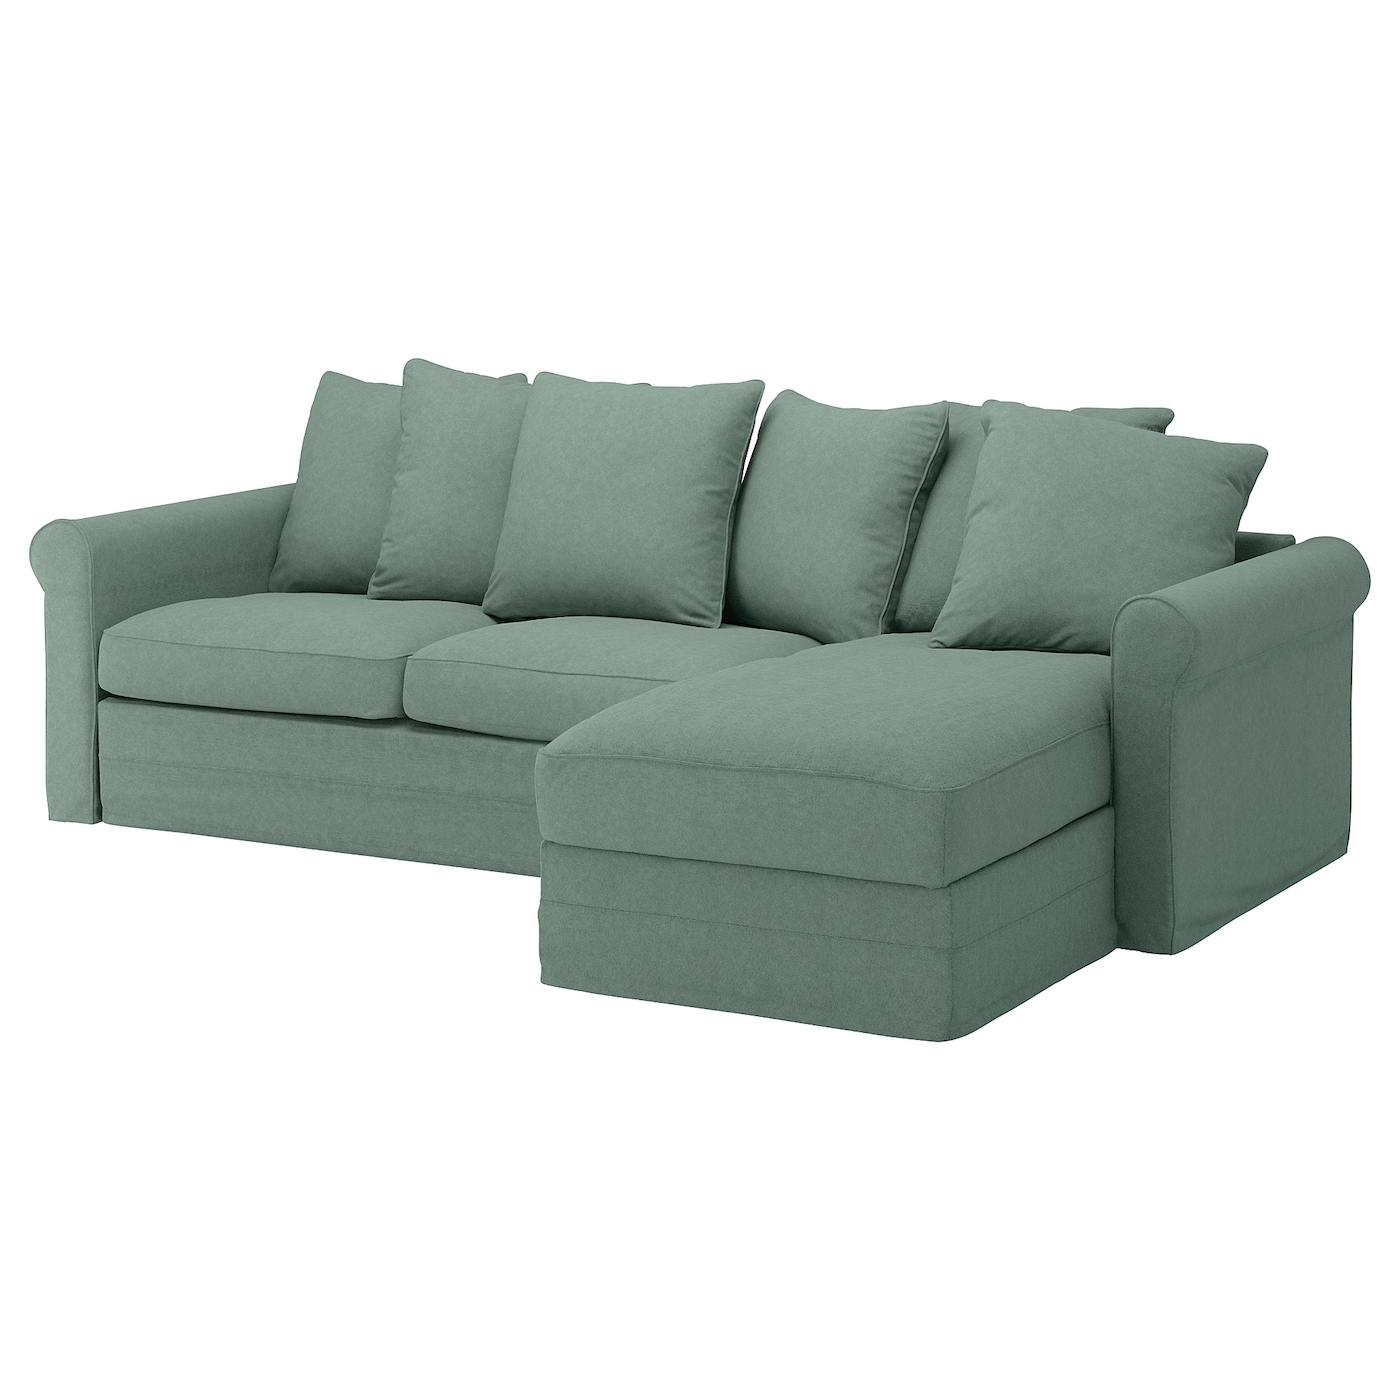 Ikea GrÖnlid 3 Seat Sofa Bed 10 Year Guarantee Read About The Terms